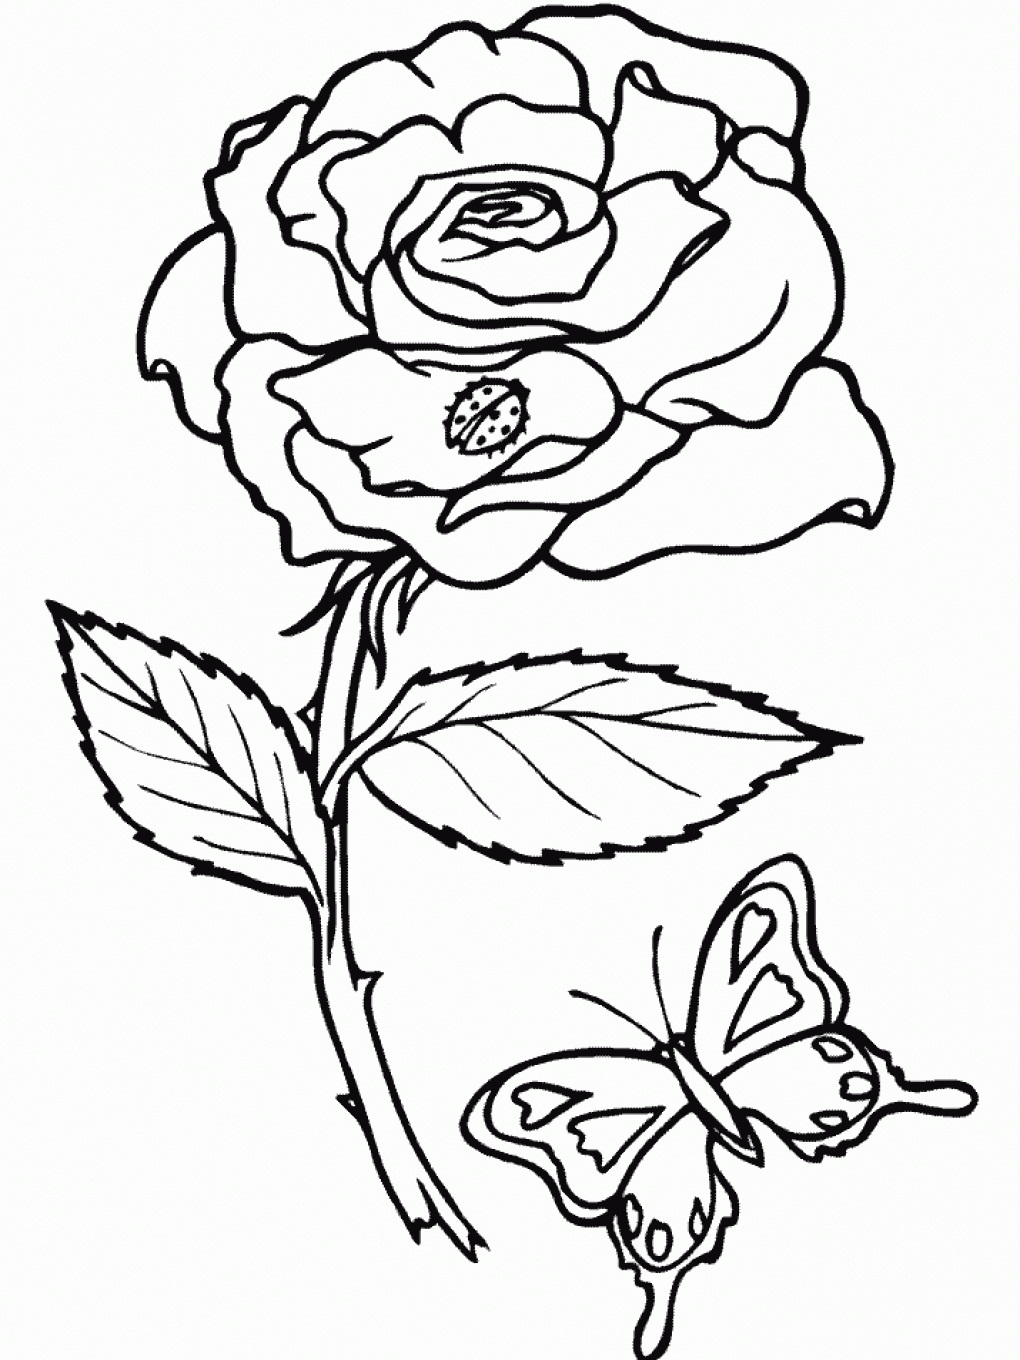 rose coloring pages printable - roses coloring pages